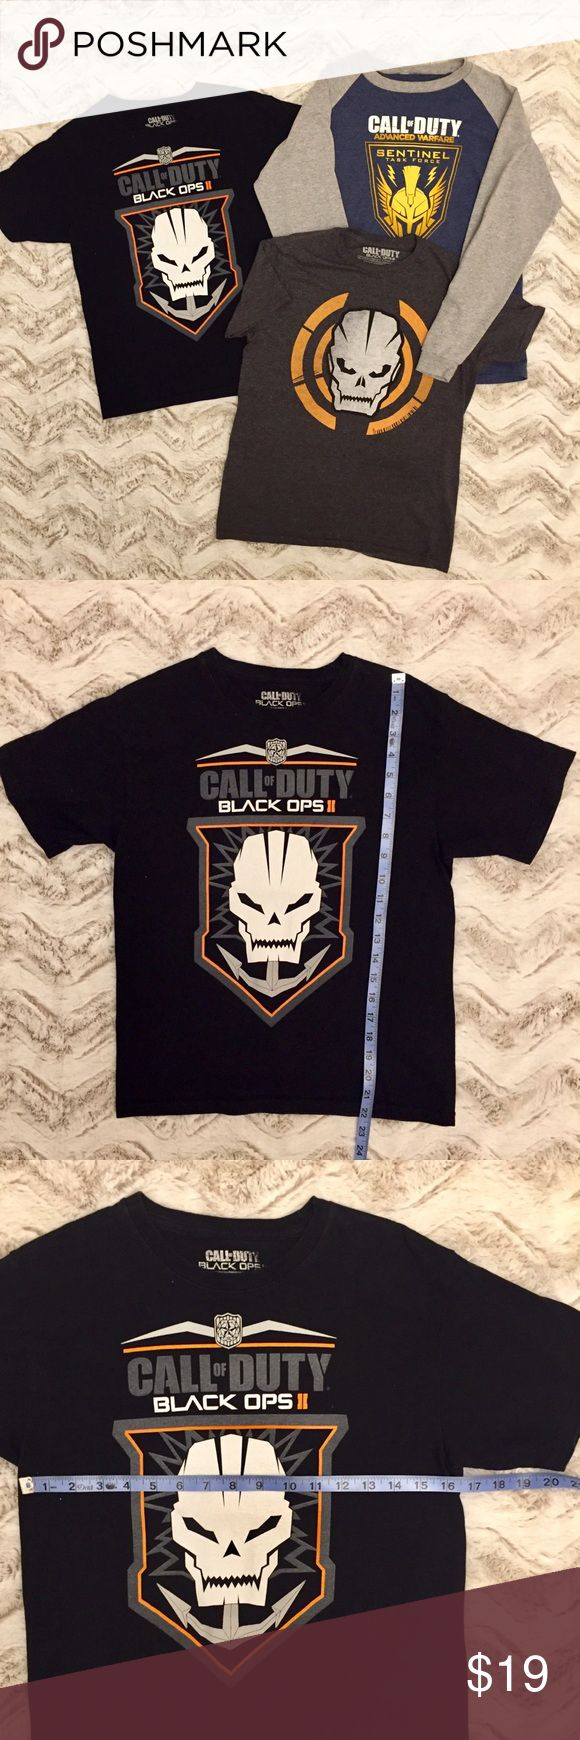 👦BOYS CALL OF DUTY T SHIRT BUNDLE OF 3 10/12👦 👦BOYS CALL OF DUTY T SHIRT BUNDLE OF 3 10/12👦. Two short and one long sleeve shirts.  Please see pictures for measurements and details.  Cotton and polyester.  All in EXCELLENT gently used condition, no signs of wear, only worn a few times.  All my items are kept in a clean house that's free of smoke and pets. 👦NCMCOLLECTIONS 👦 Call of Duty Shirts & Tops